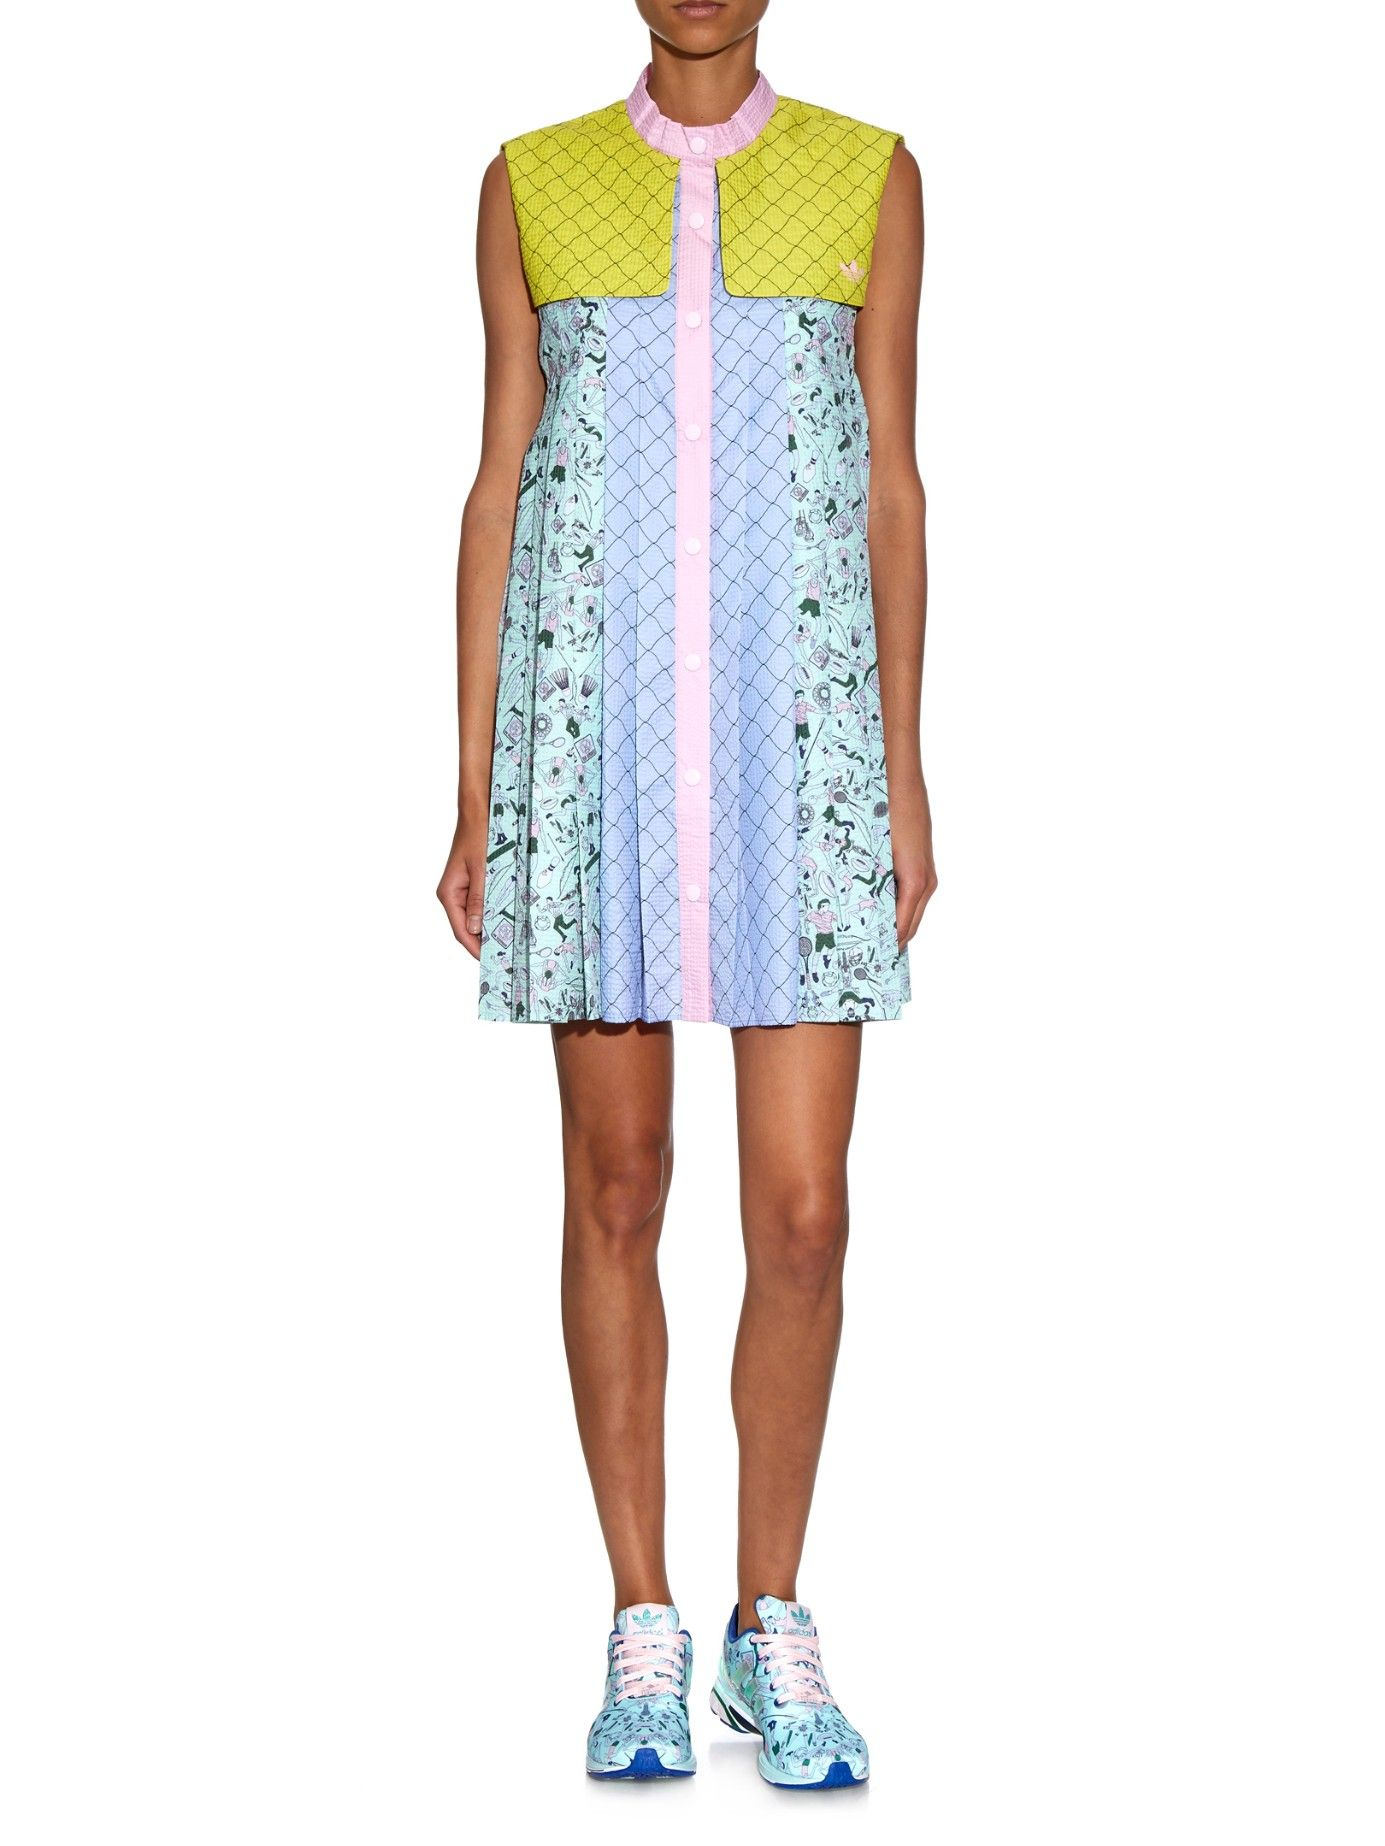 People-print storm-flap textured dress | adidas Originals By Mary Katrantzou  | MATCHESFASHION